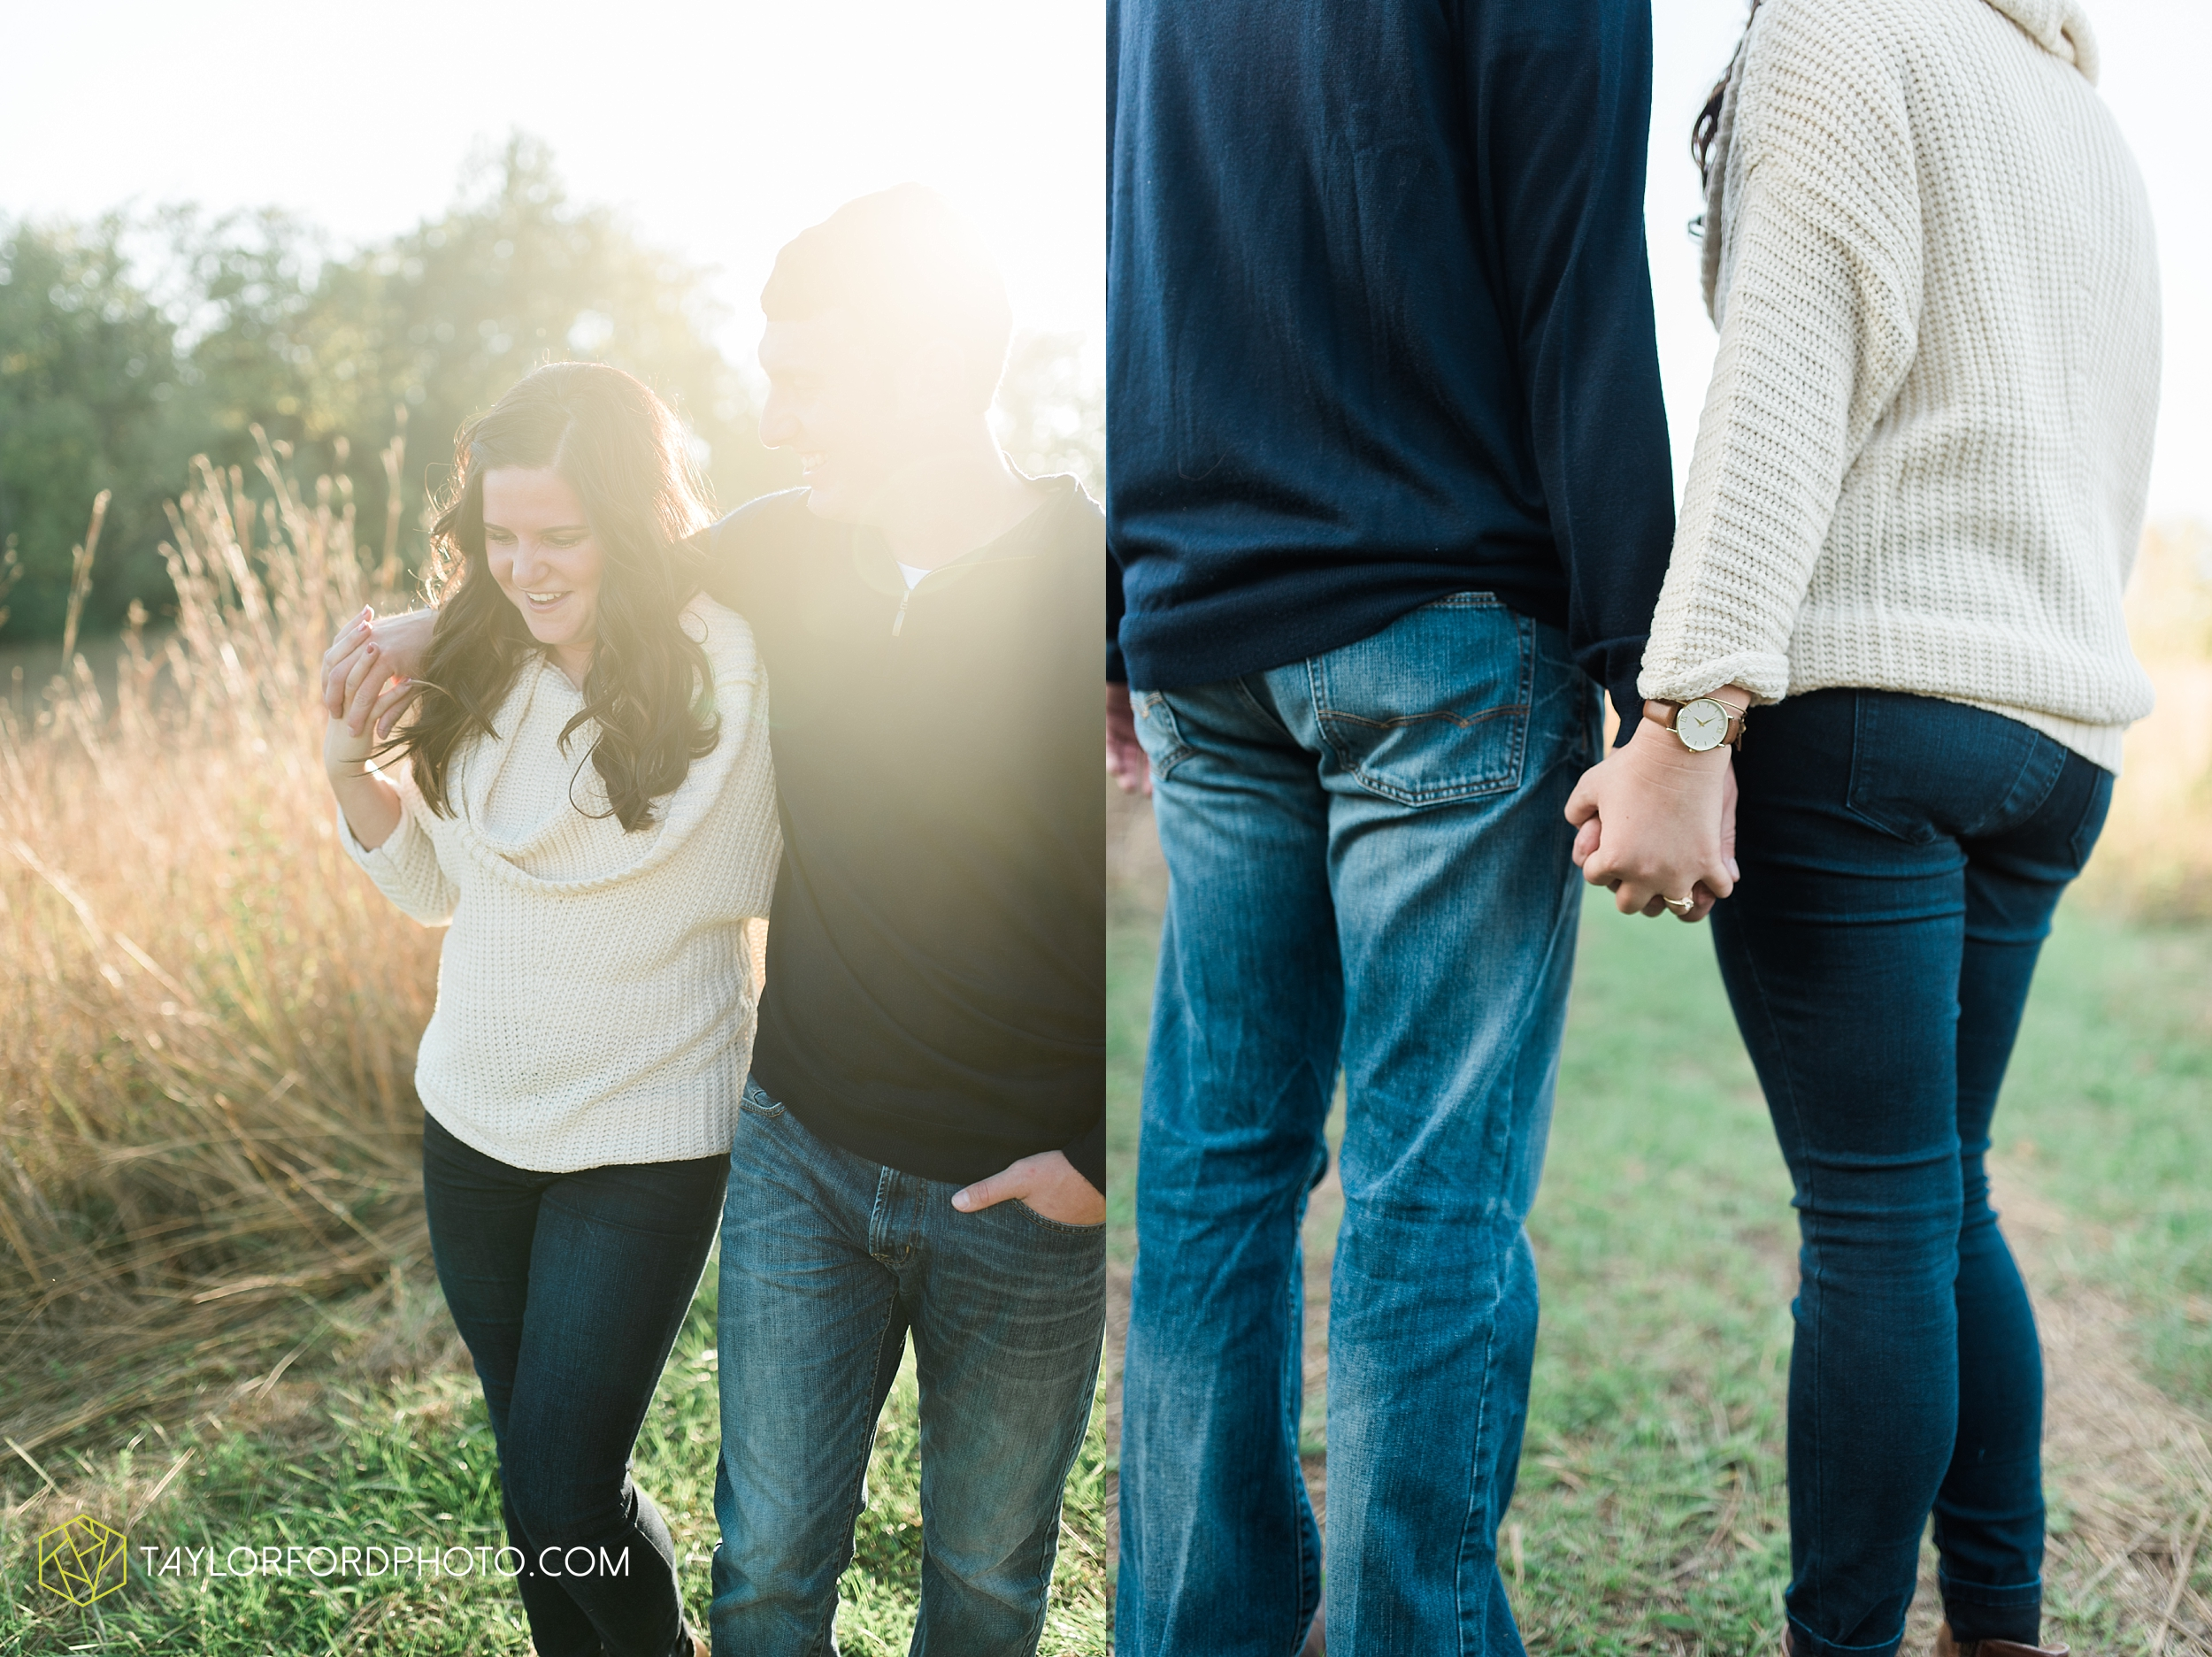 fort-wayne-indiana-engagement-wedding-photographer-Taylor-Ford-Photography-salomon-farm-park_3563.jpg